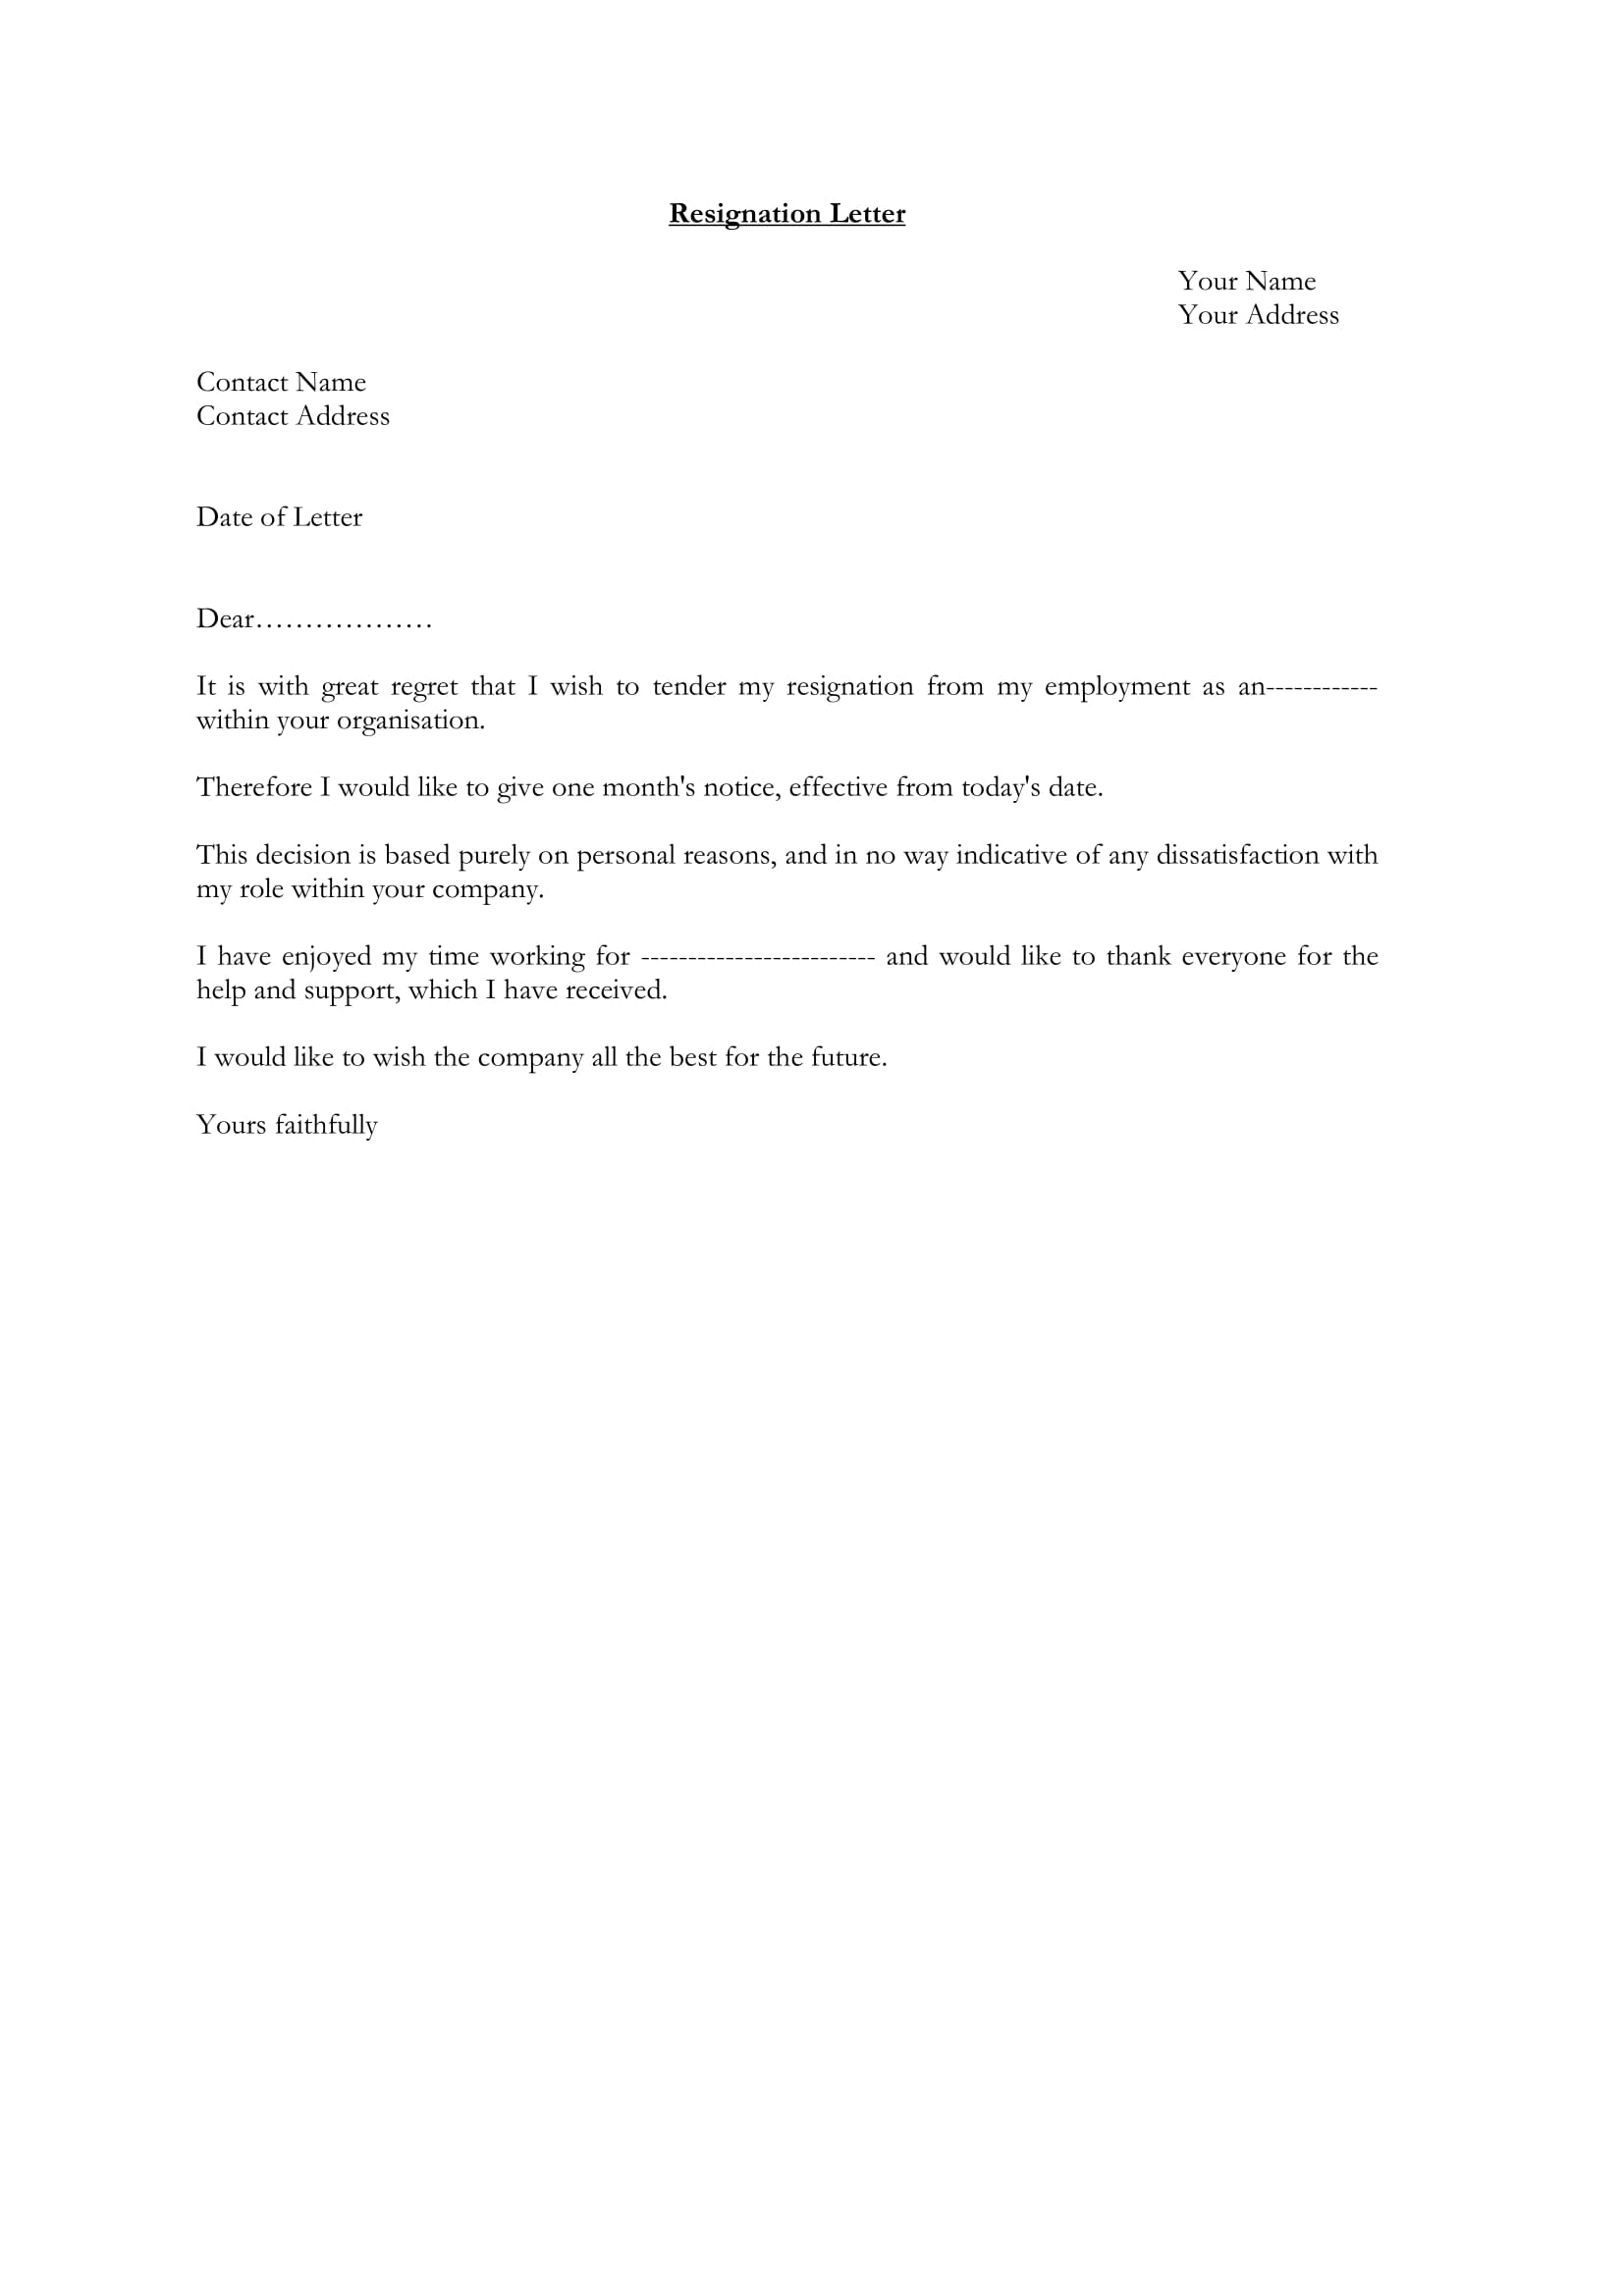 Superior Simple Resignation Letter Example. Resignation Letter 1